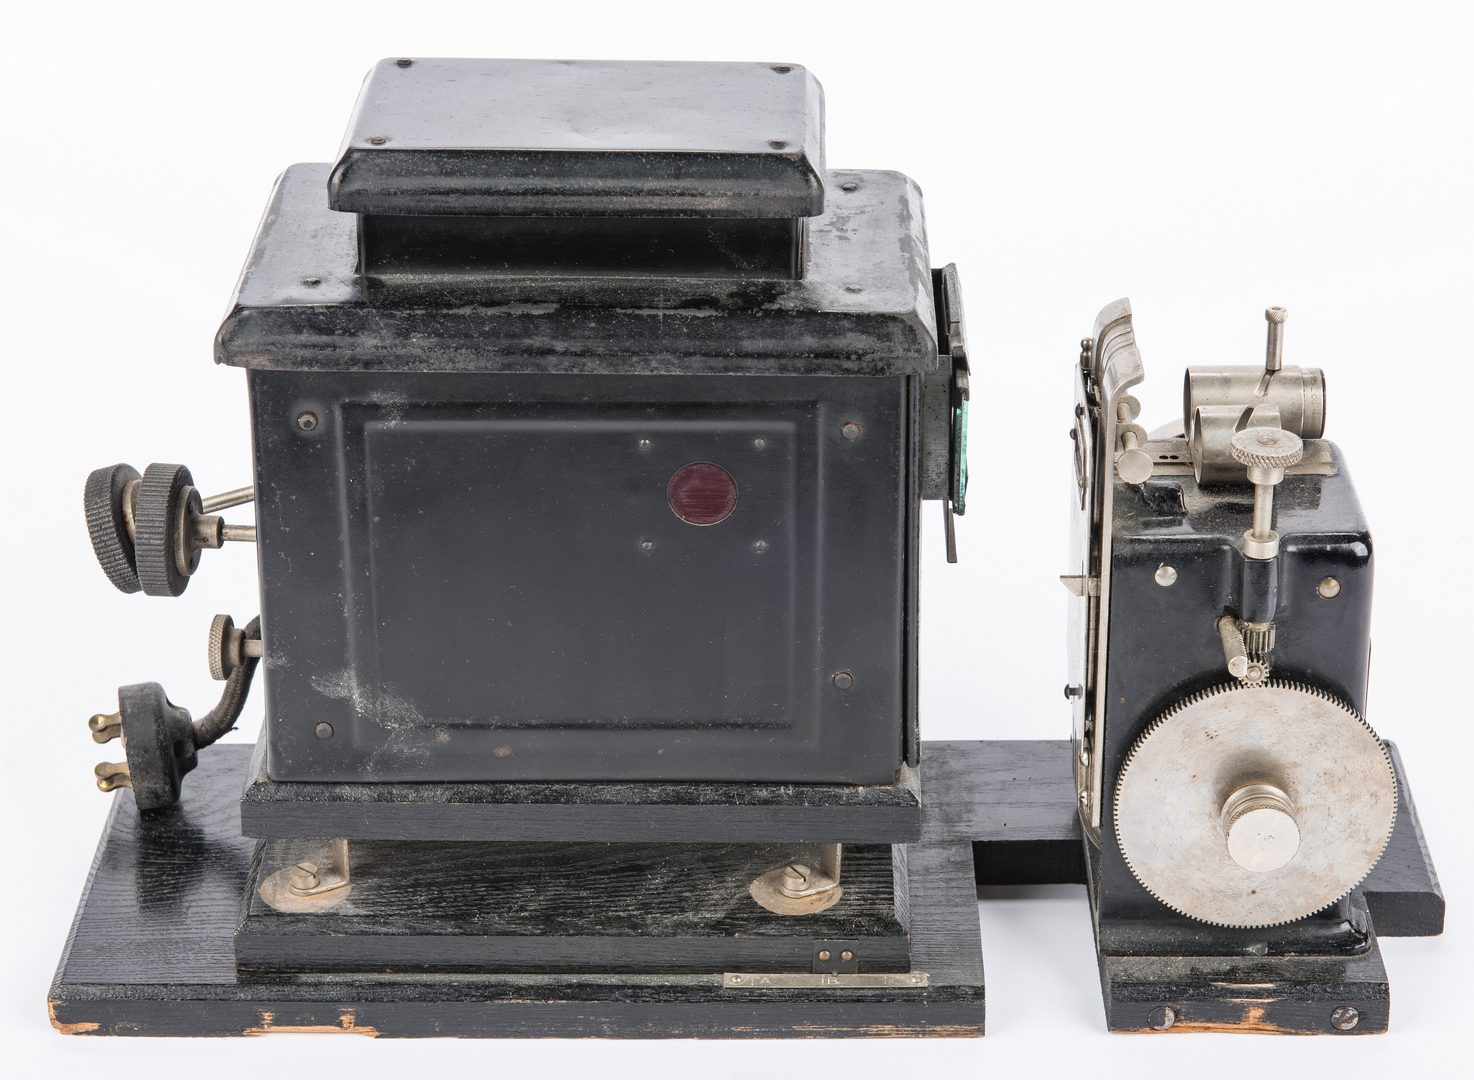 Lot 848: Edison Home Kinetoscope